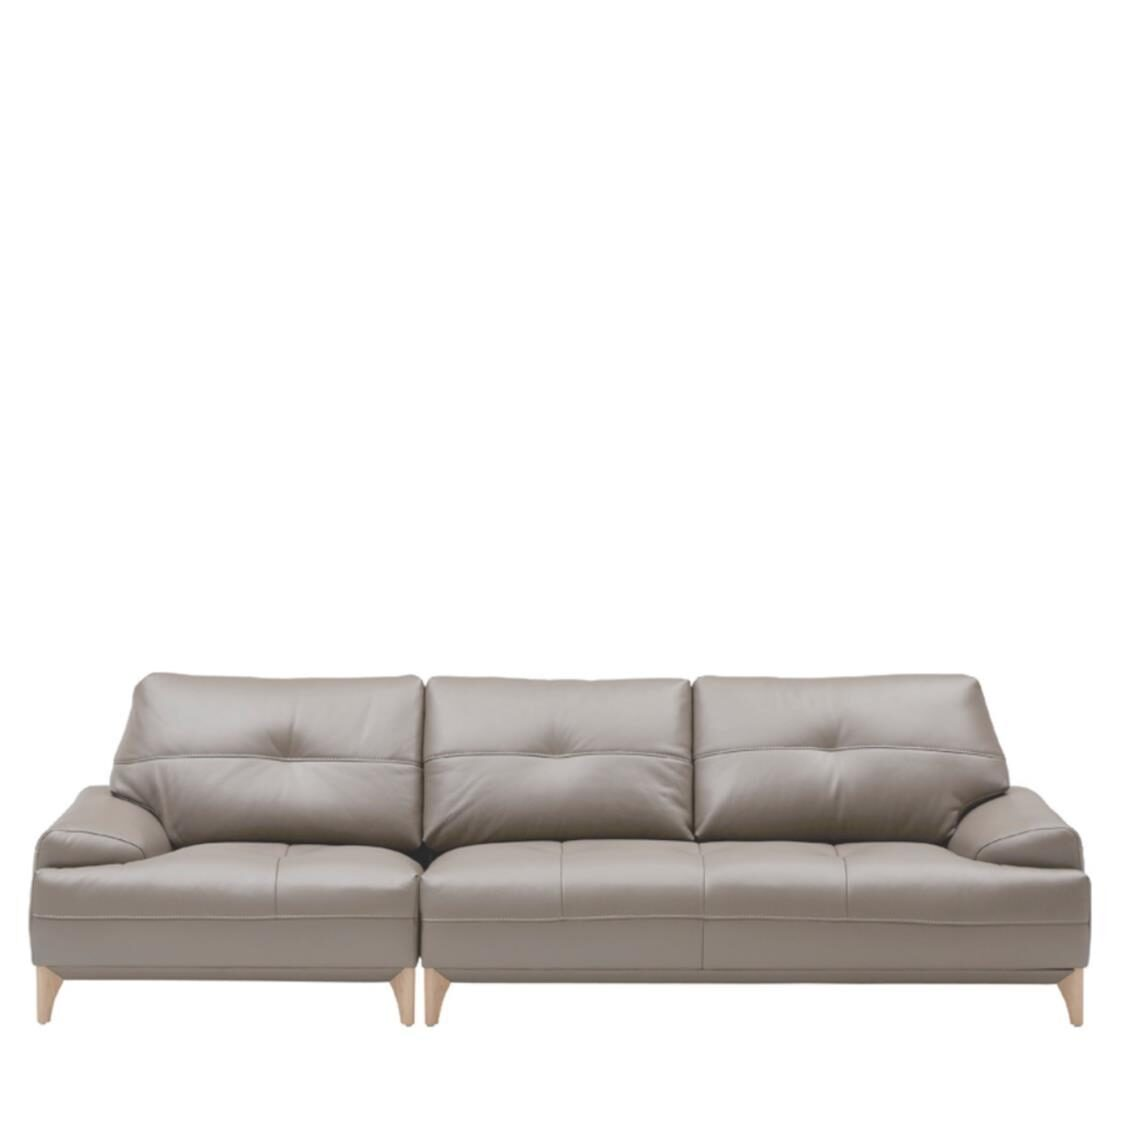 Boston Leather Sofa For 4  L390 Nude